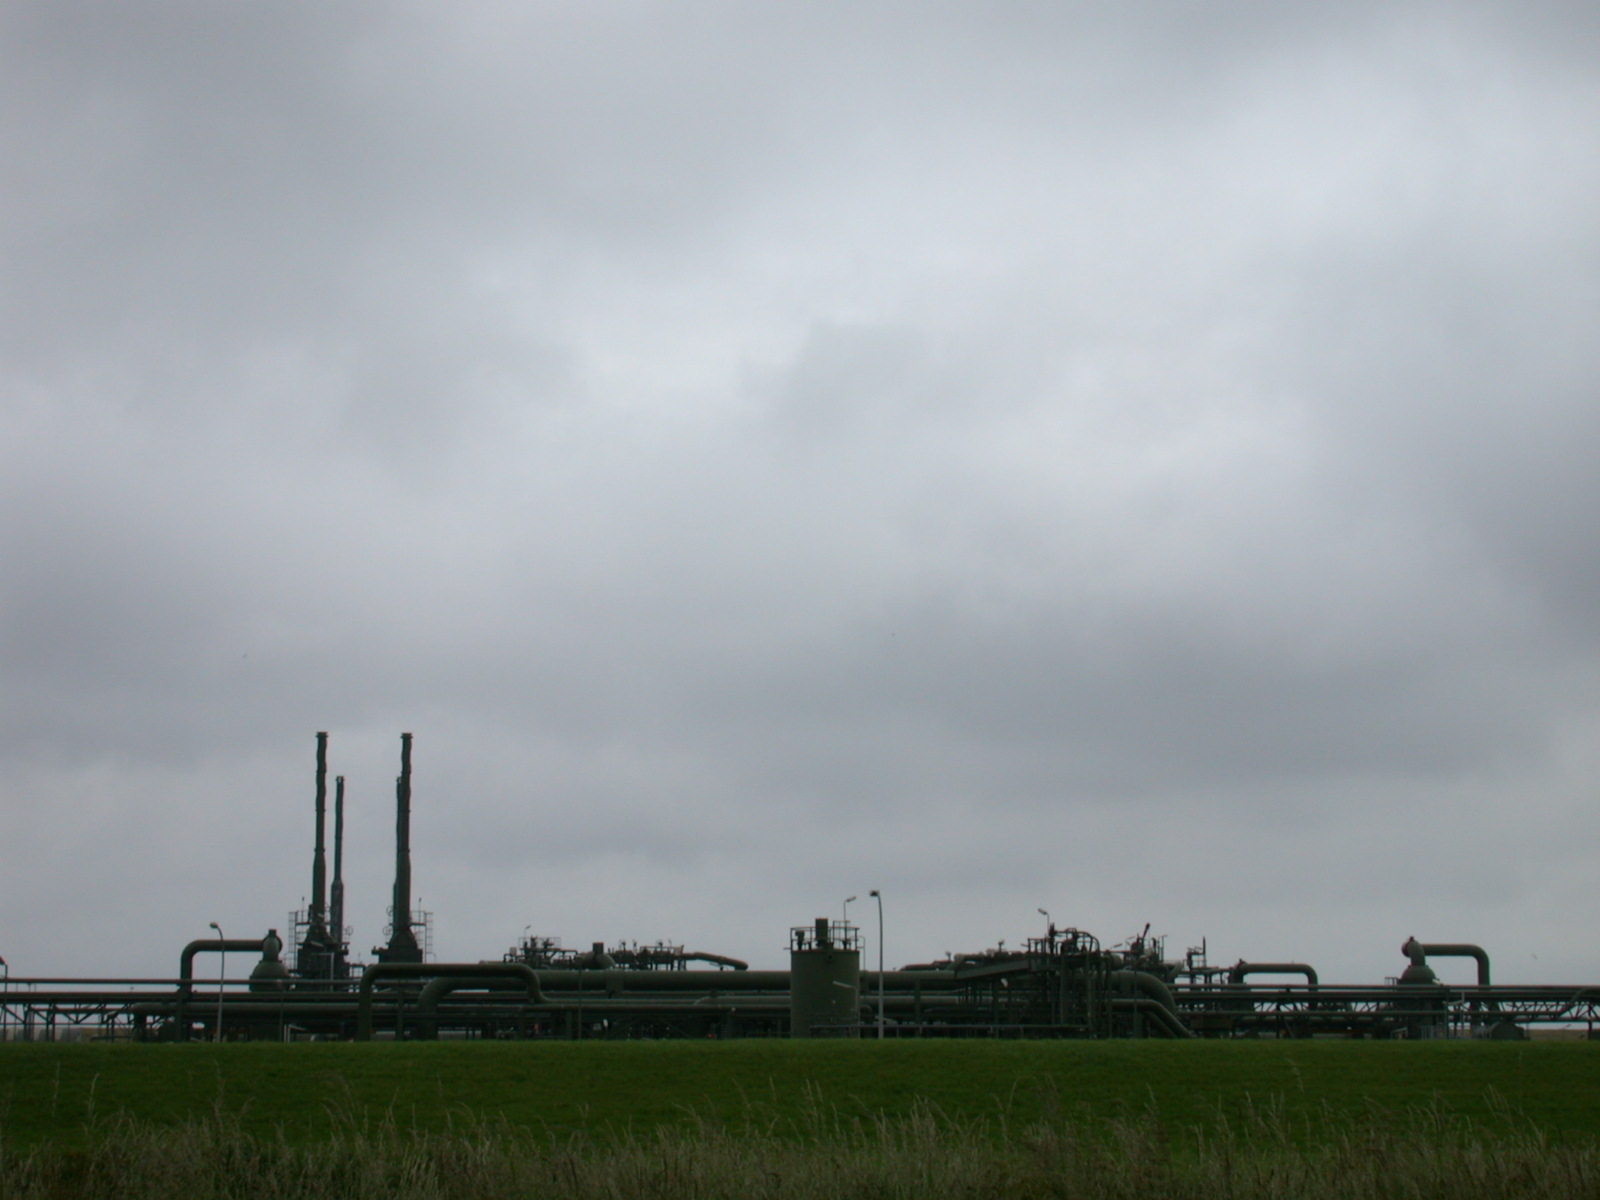 industry pipes gas factory chimney